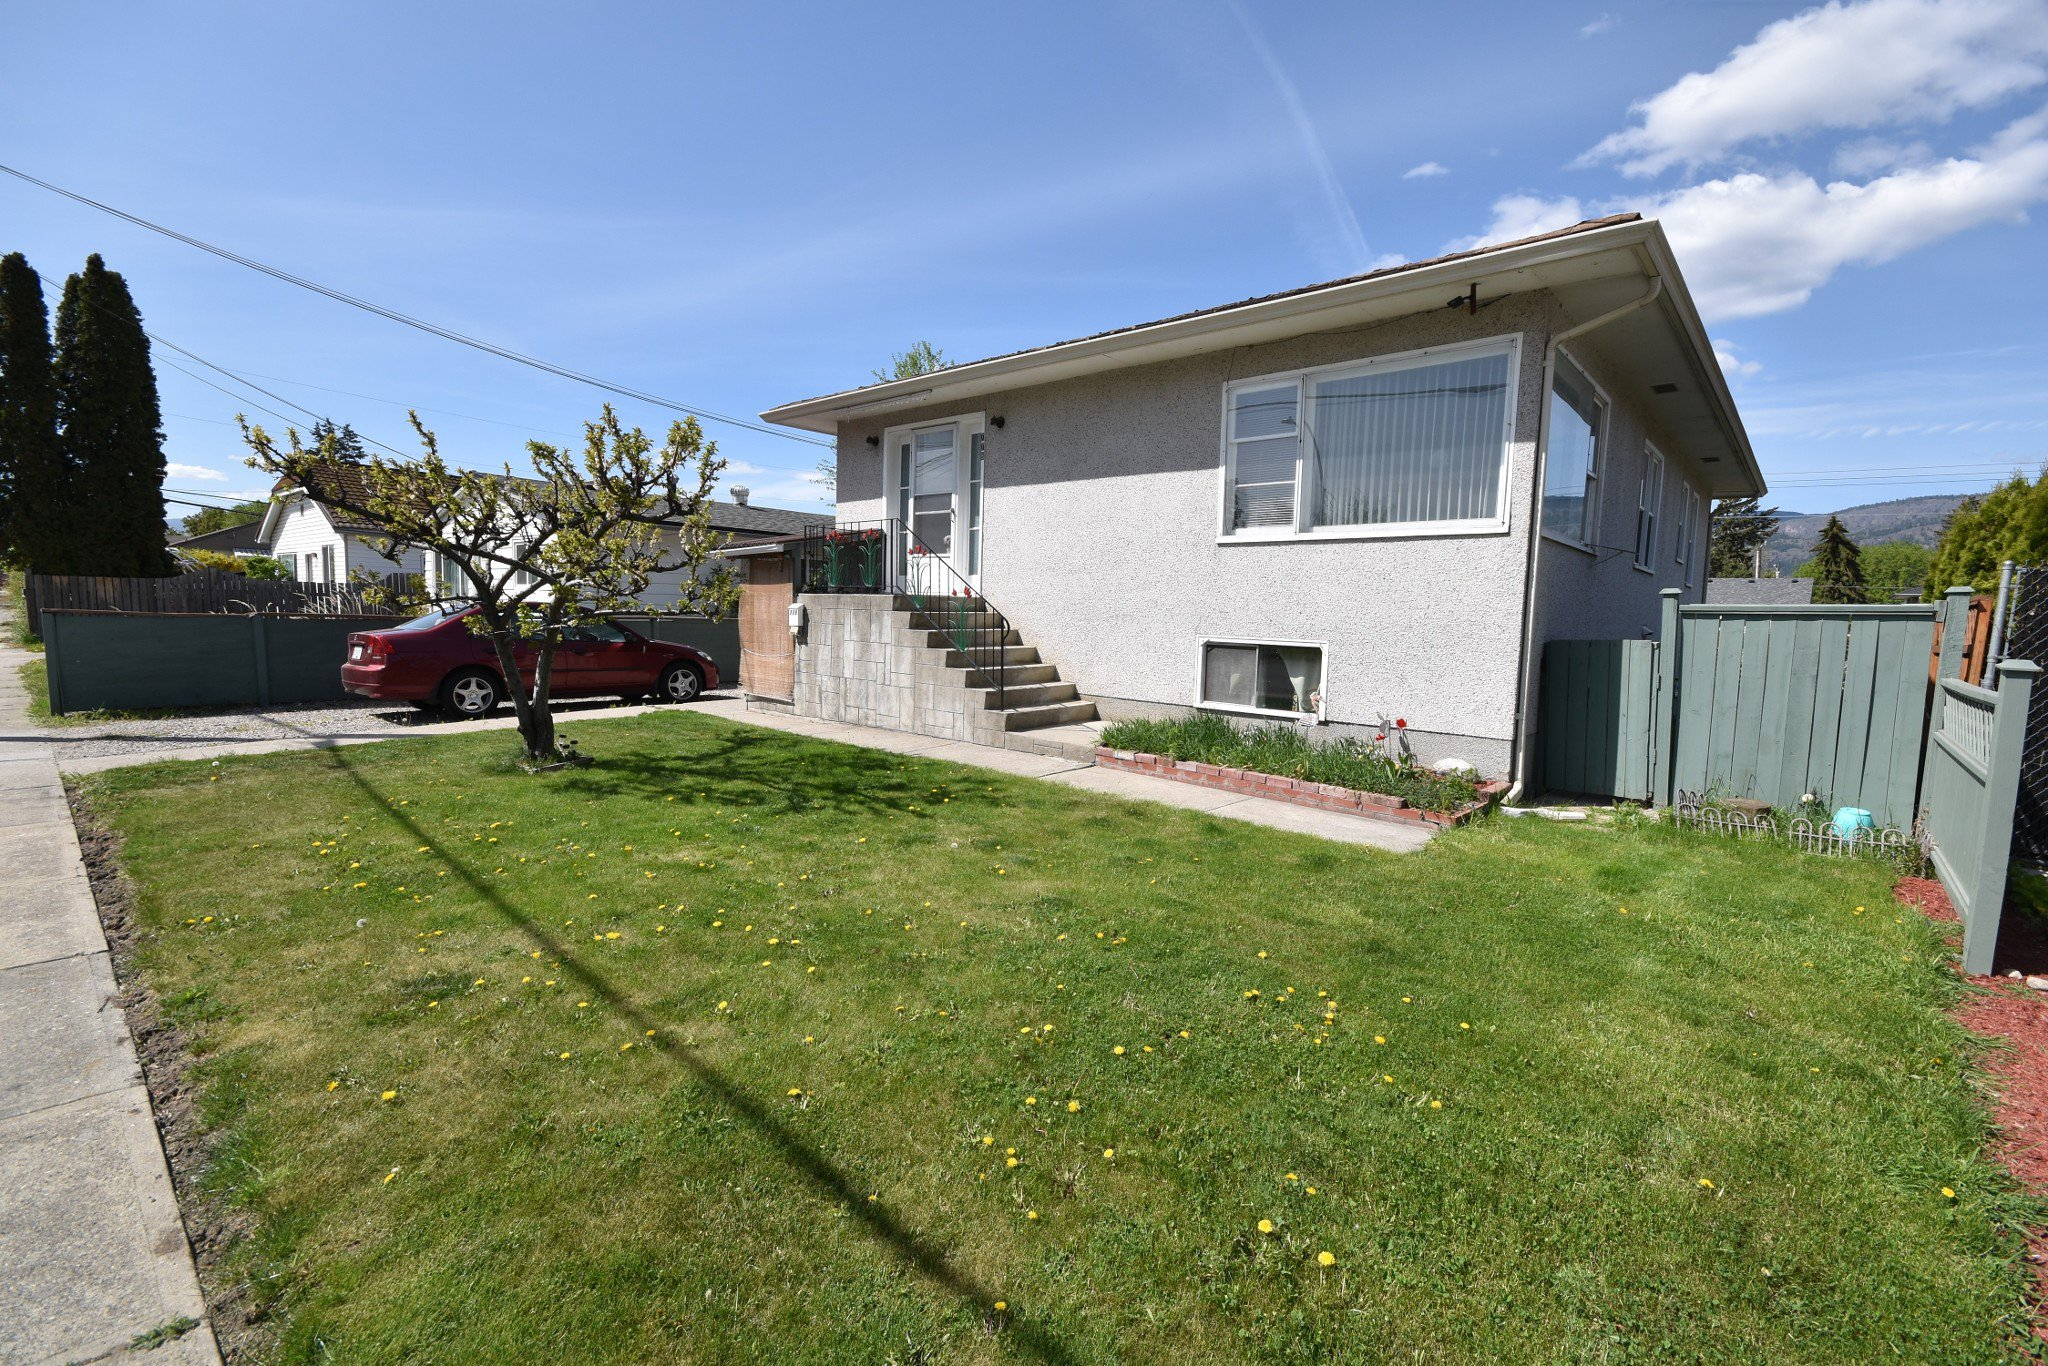 Main Photo: 778 Walrod Street in Kelowna: Kelowna North House for sale (Central Okanagan)  : MLS®# 10182178